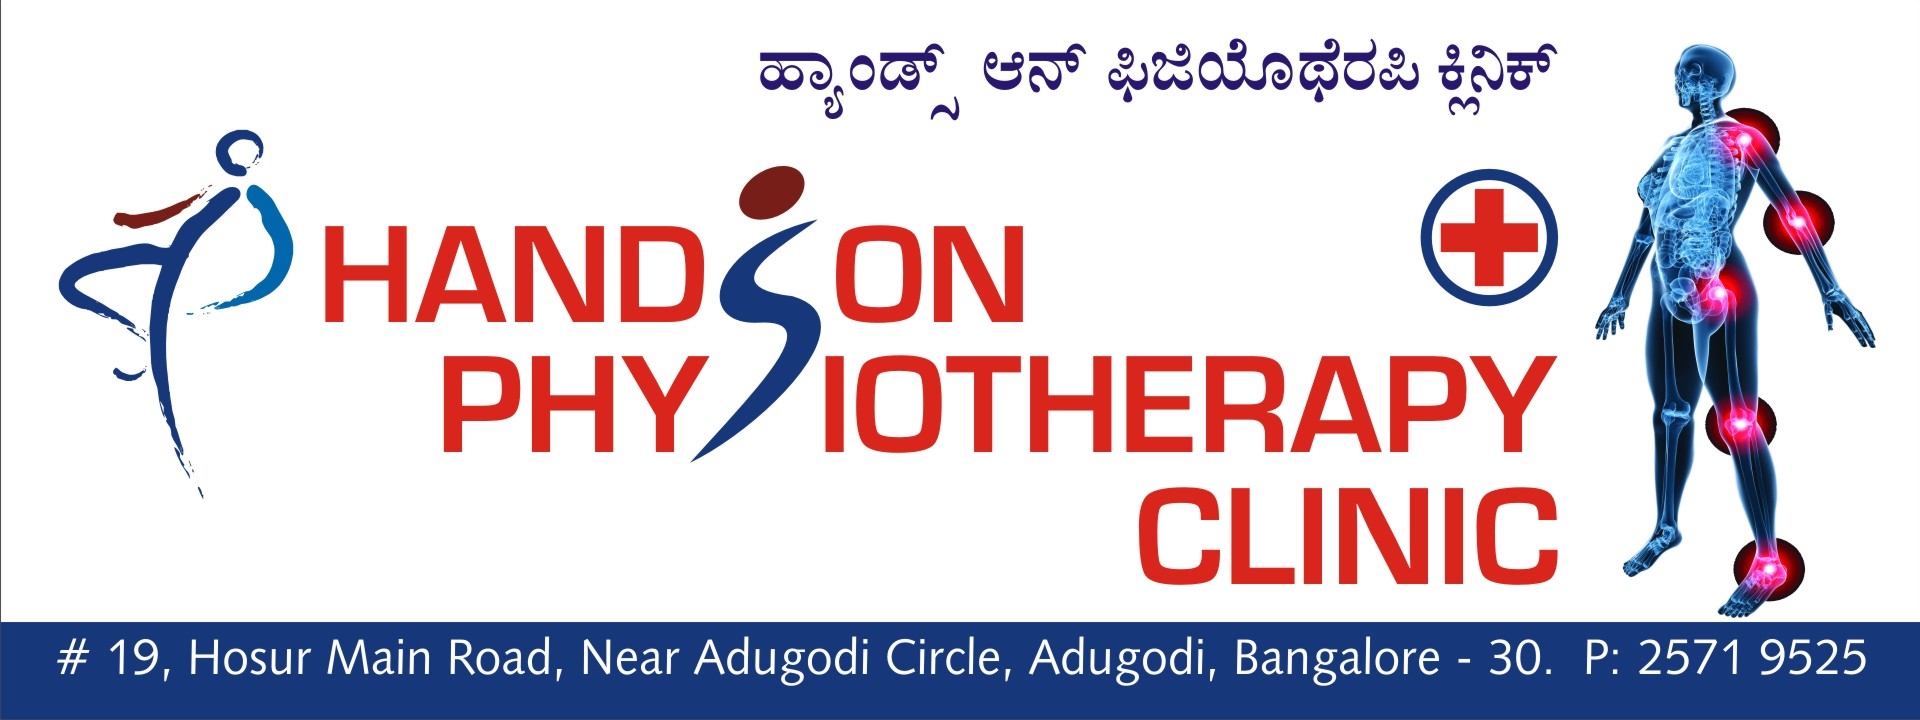 Hands On Physiotherapy Clinic And Rehabilitation Center